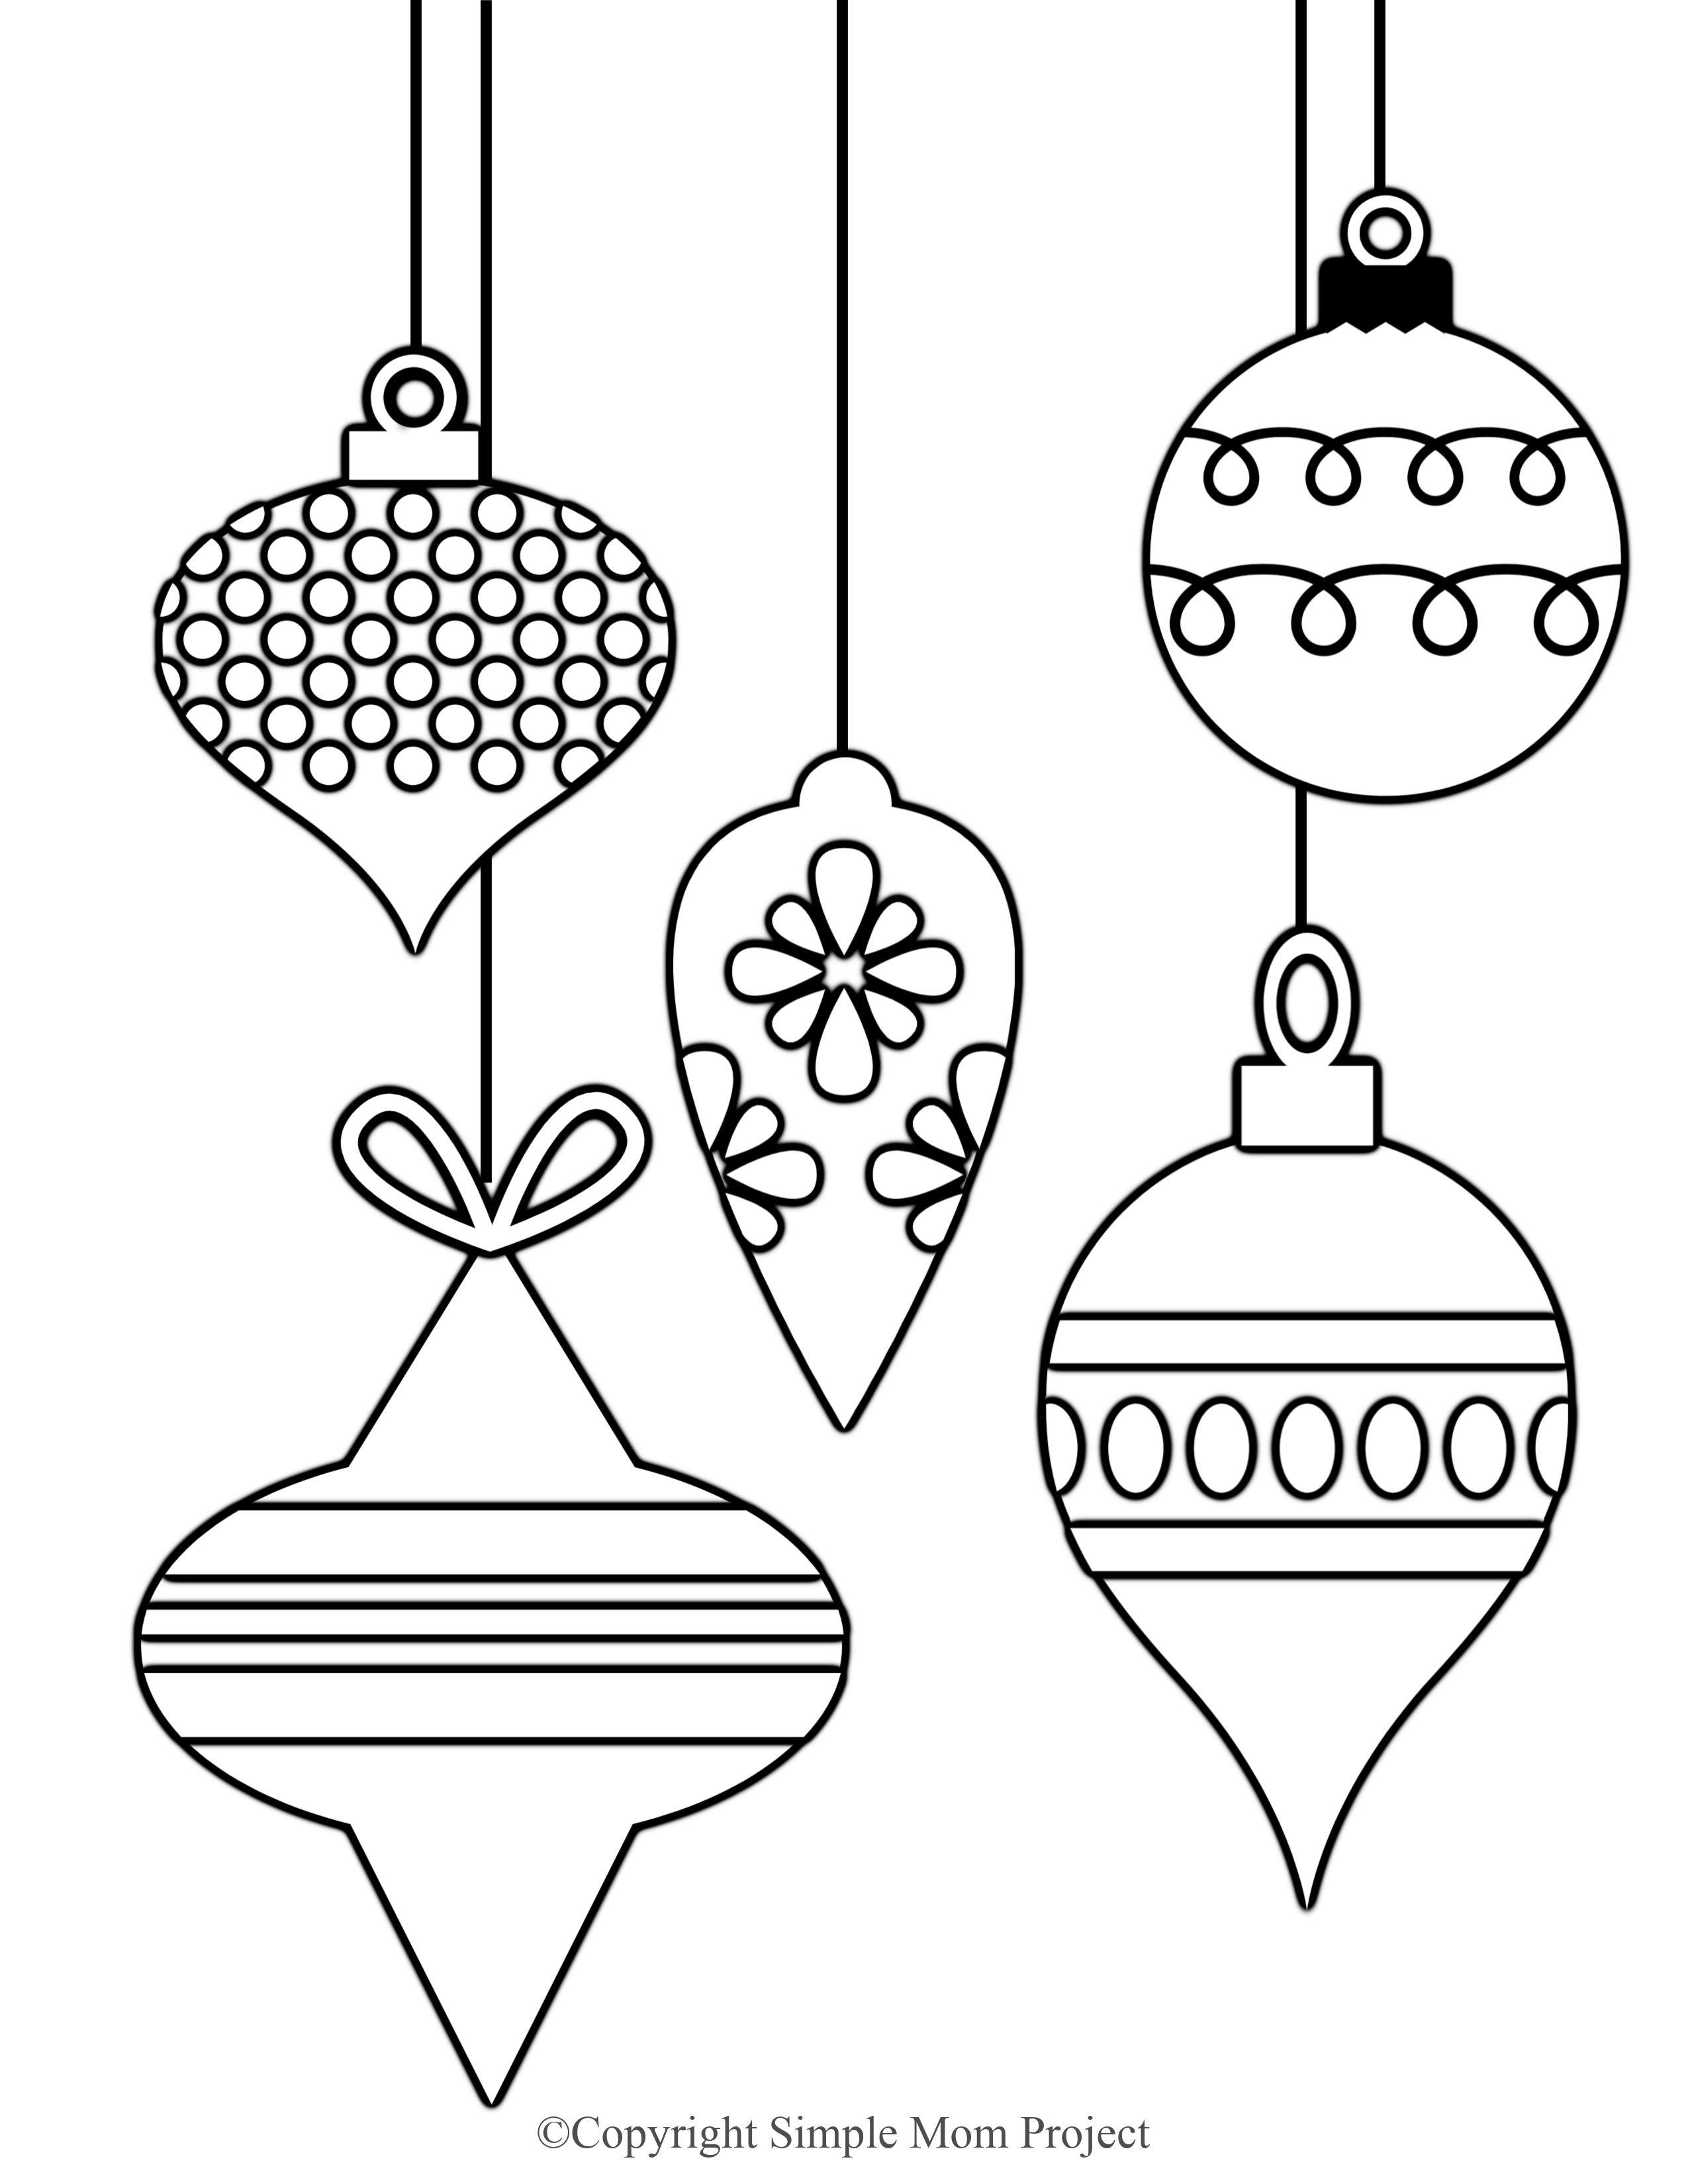 Giant Merry Christmas Coloring Activity Book 6 Sample Pages With Answers Merry Christmas Coloring Pages Christmas Coloring Books Coloring Books